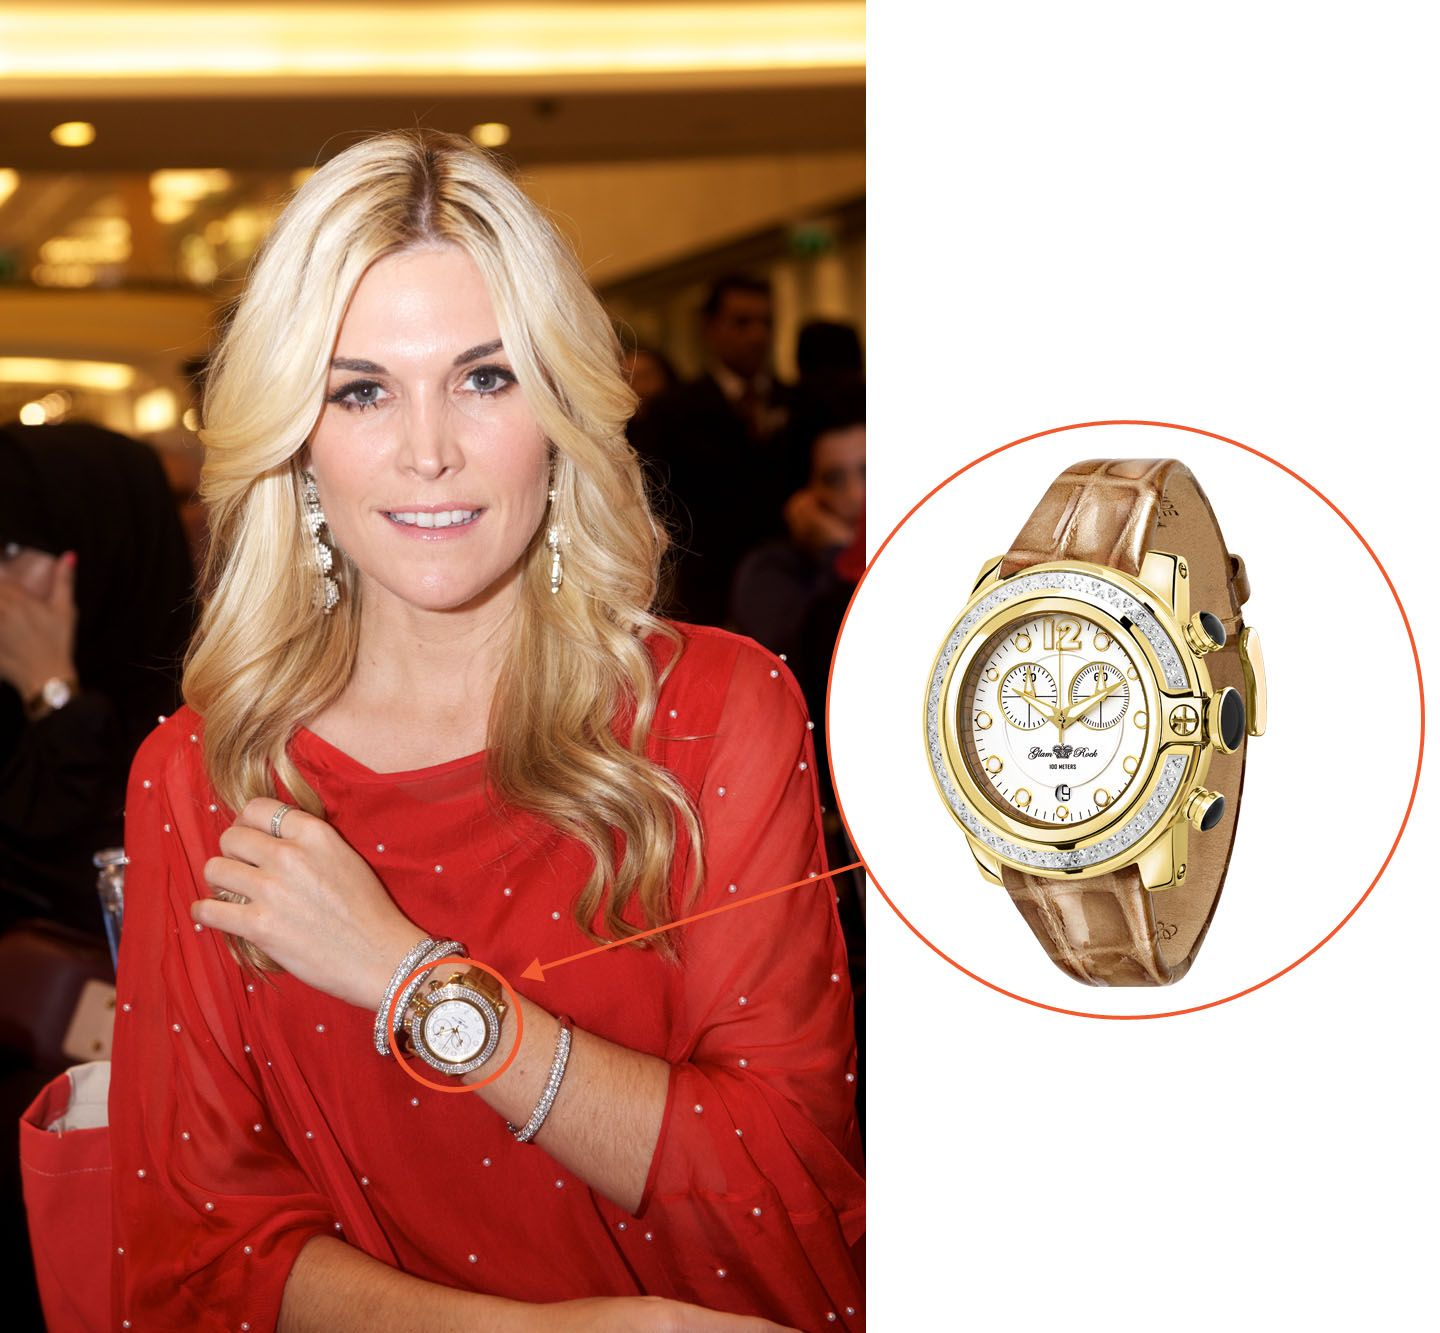 Tinsley mortimer in her sobe watch in dubai celebrities in glam rock pinterest glam rock for Celebrity rocks watches